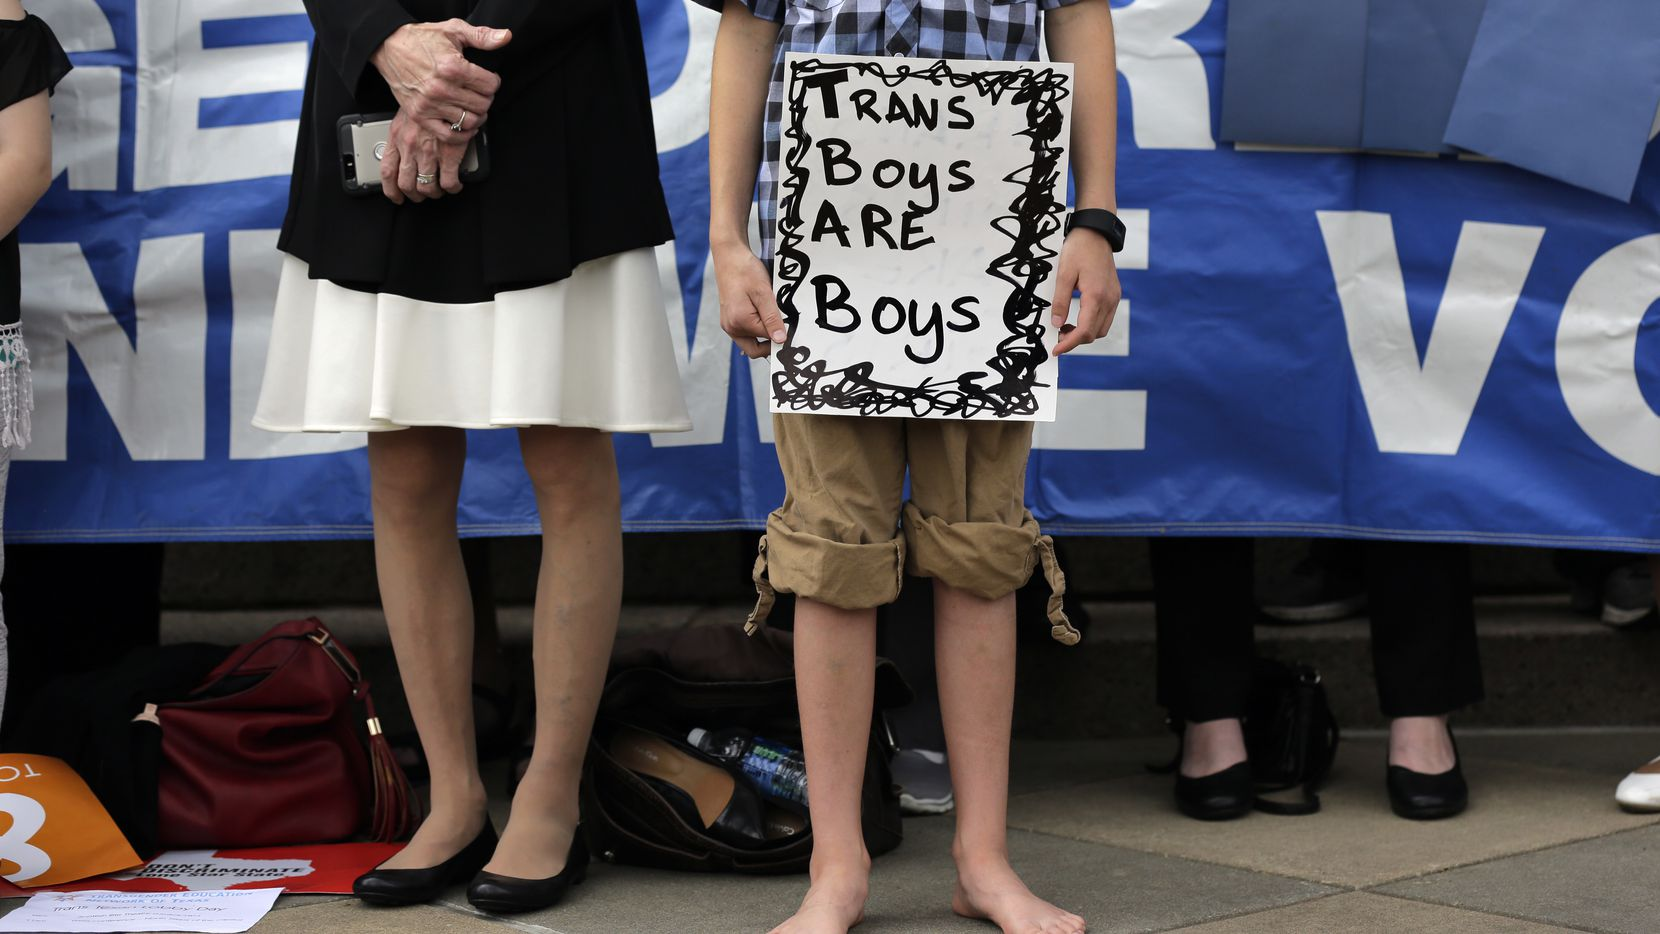 """The Texas Legislature failed to pass a """"bathroom bill"""" that would affect transgender people, but Gov. Greg Abbott has put the issue on the agenda for the special session next month. (AP Photo/Eric Gay)"""